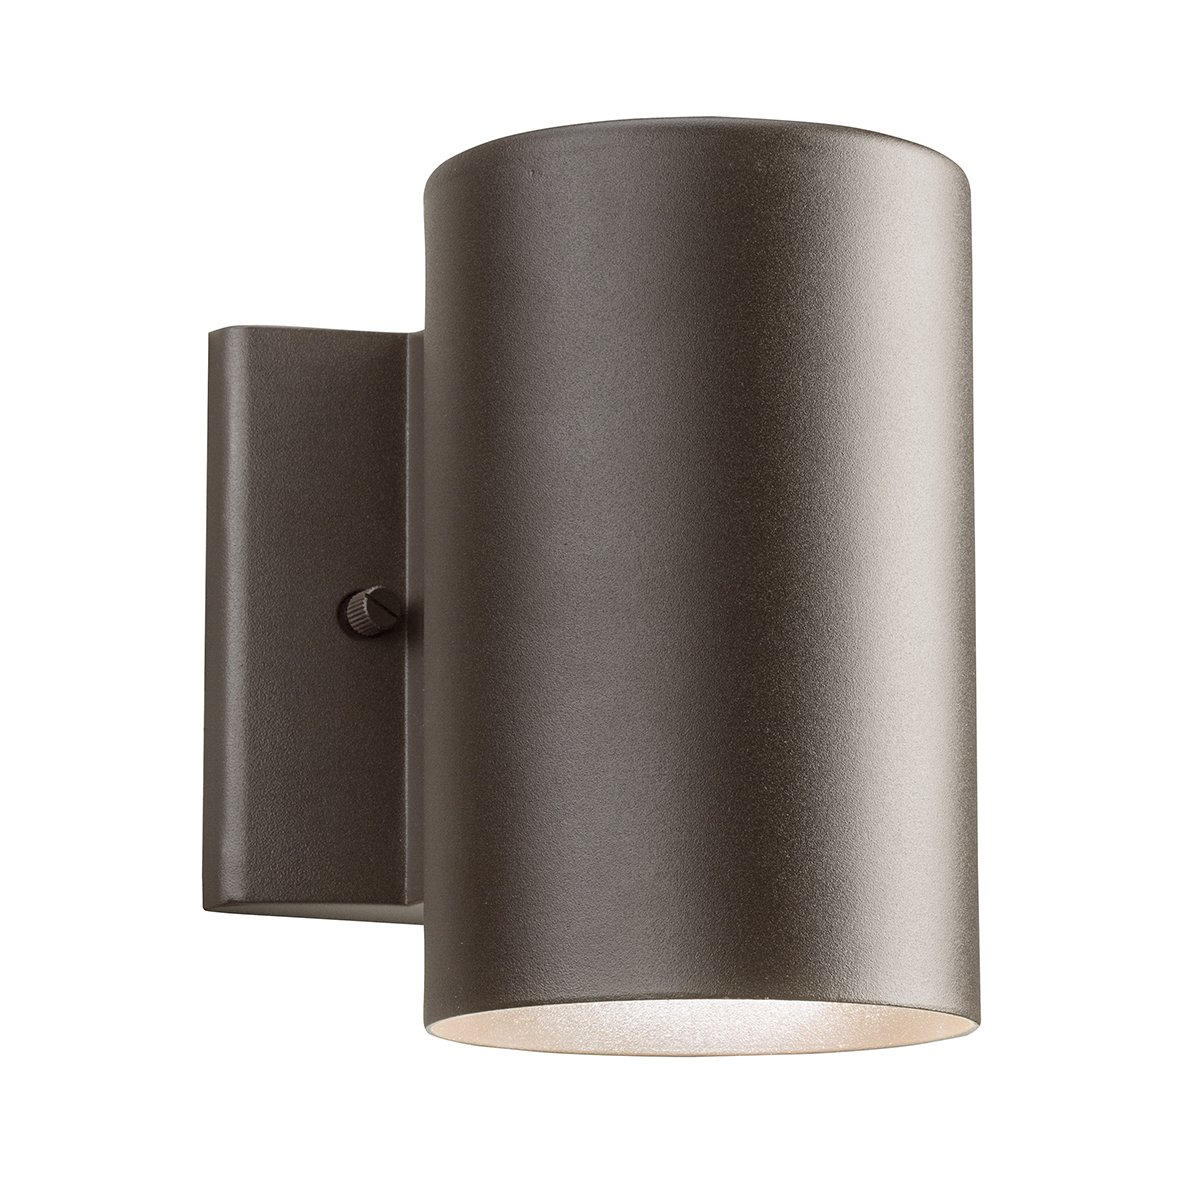 Kichler 11250AZT30 1 Light Outdoor Wall LED  Small     Amazon com. Kichler Lighting Outdoor Sconce. Home Design Ideas